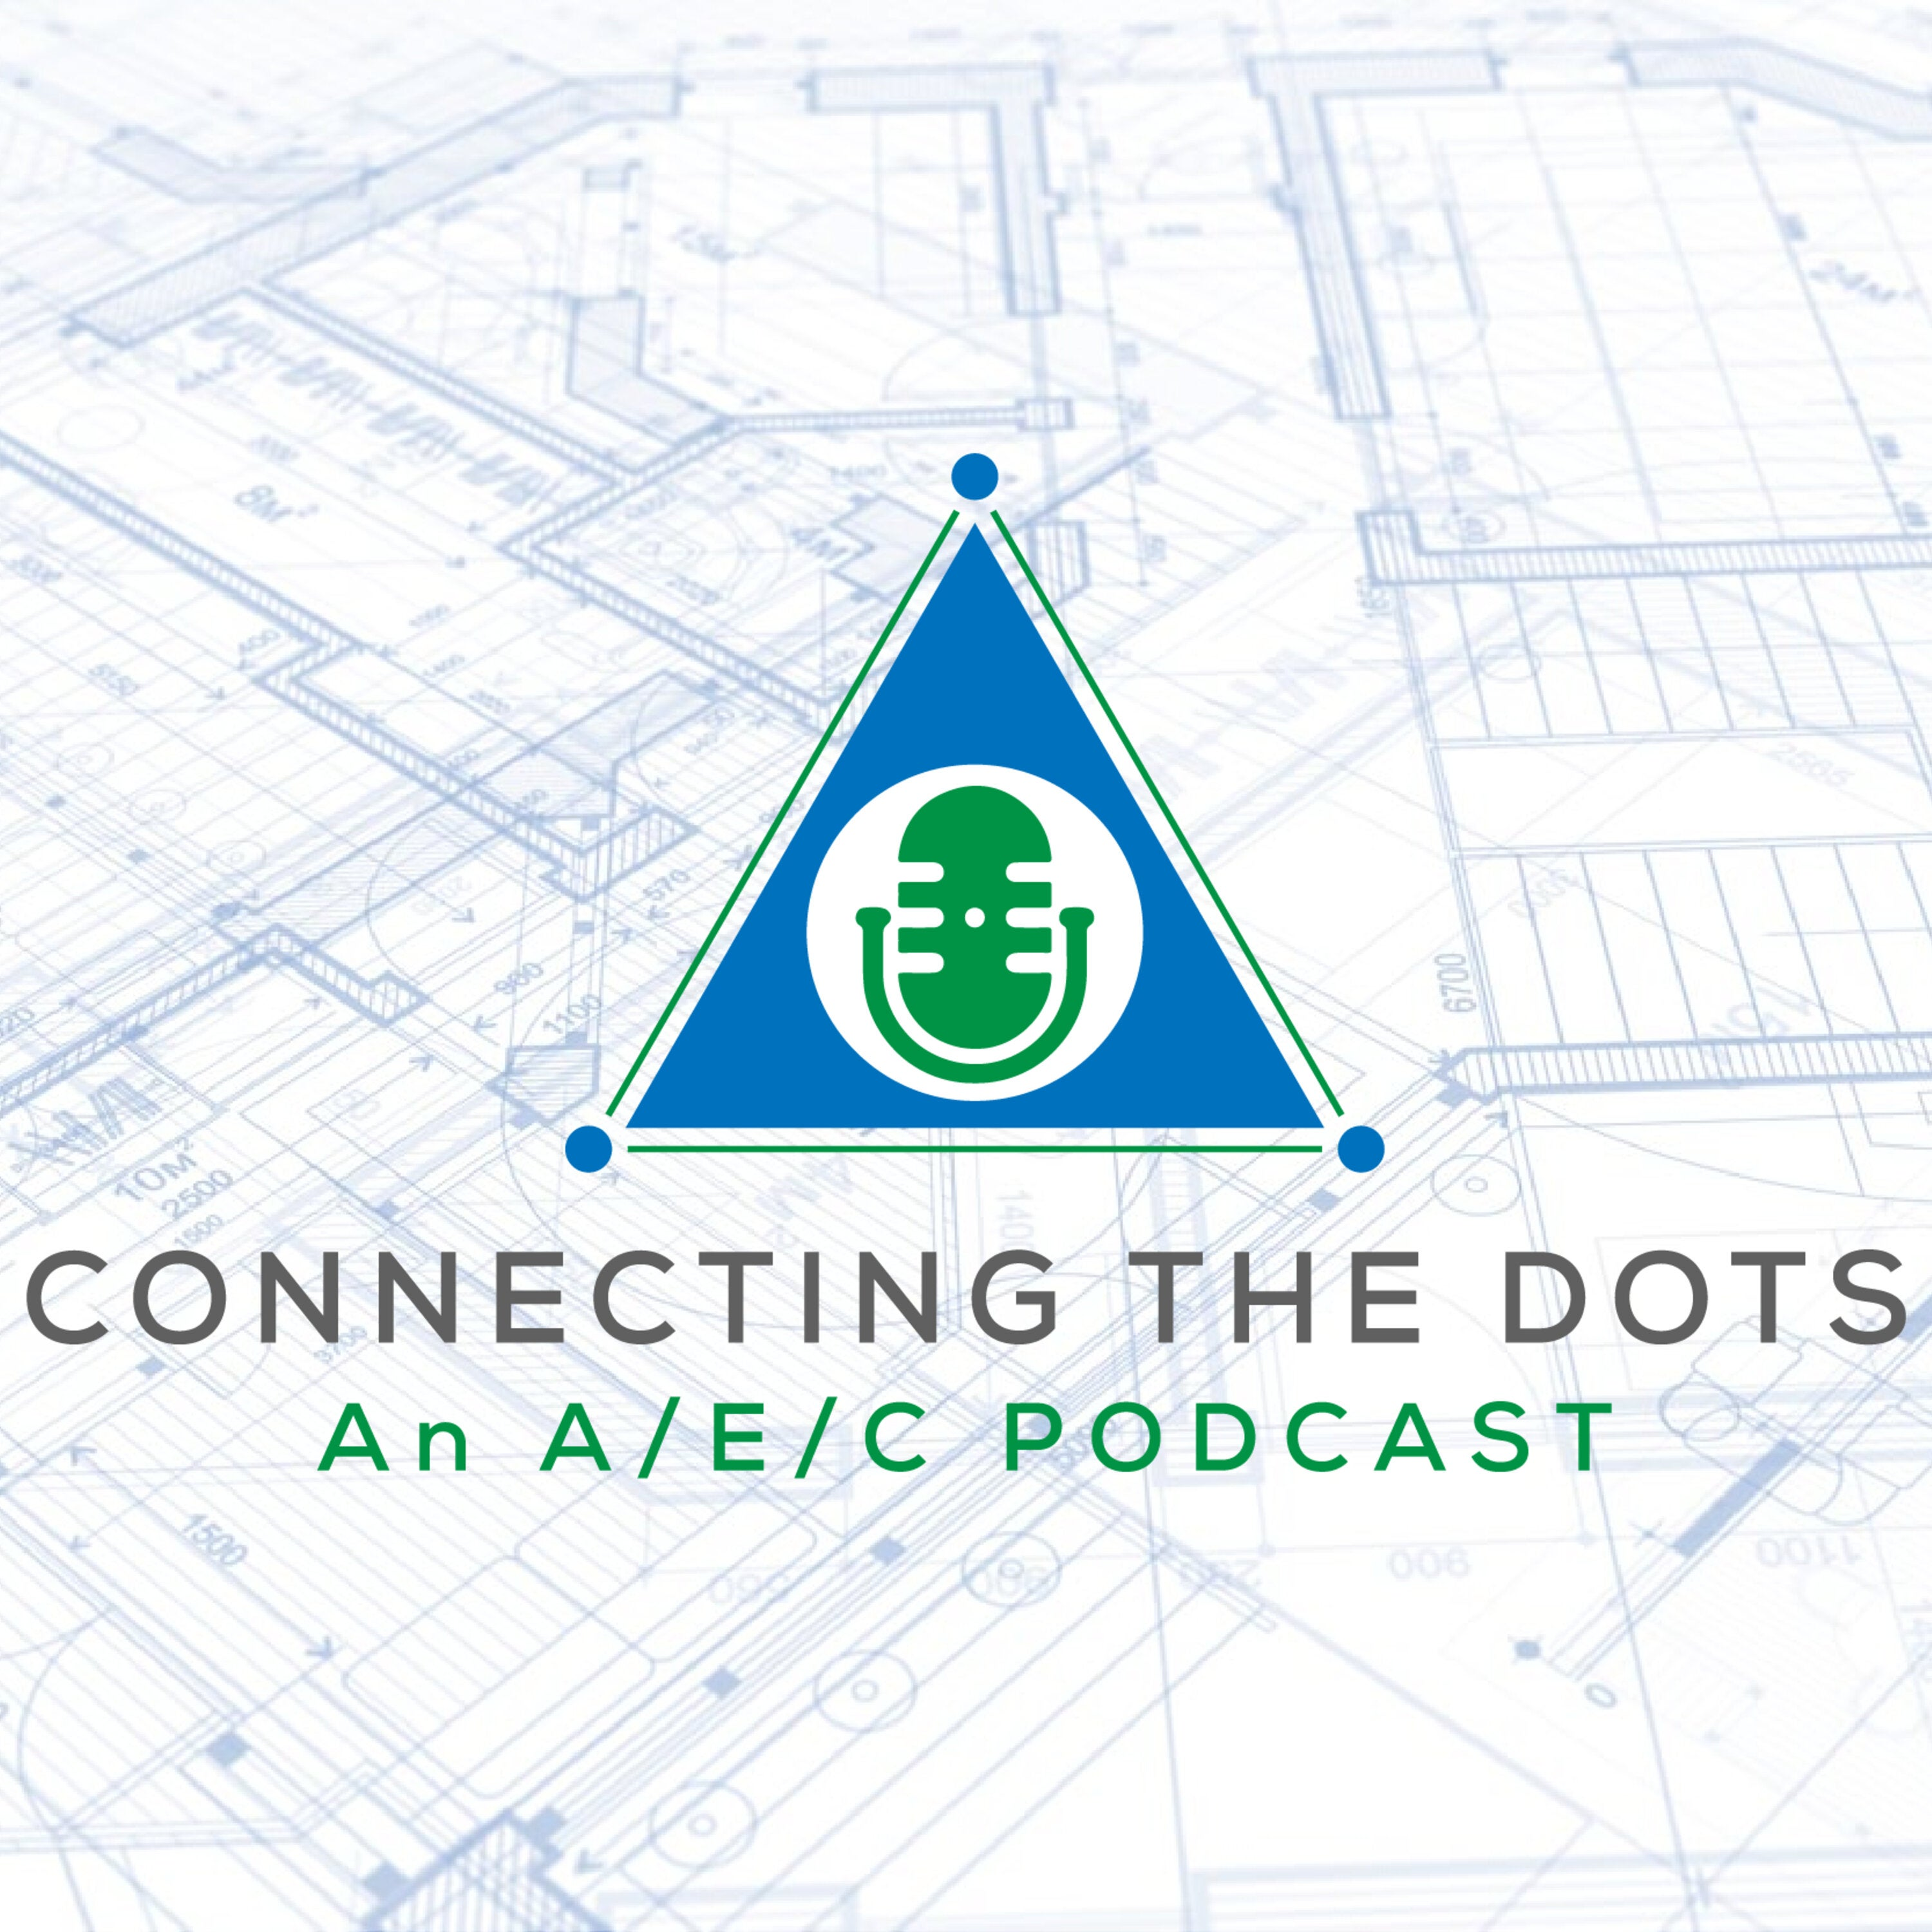 Connecting the Dots Podcast Cover Artwork